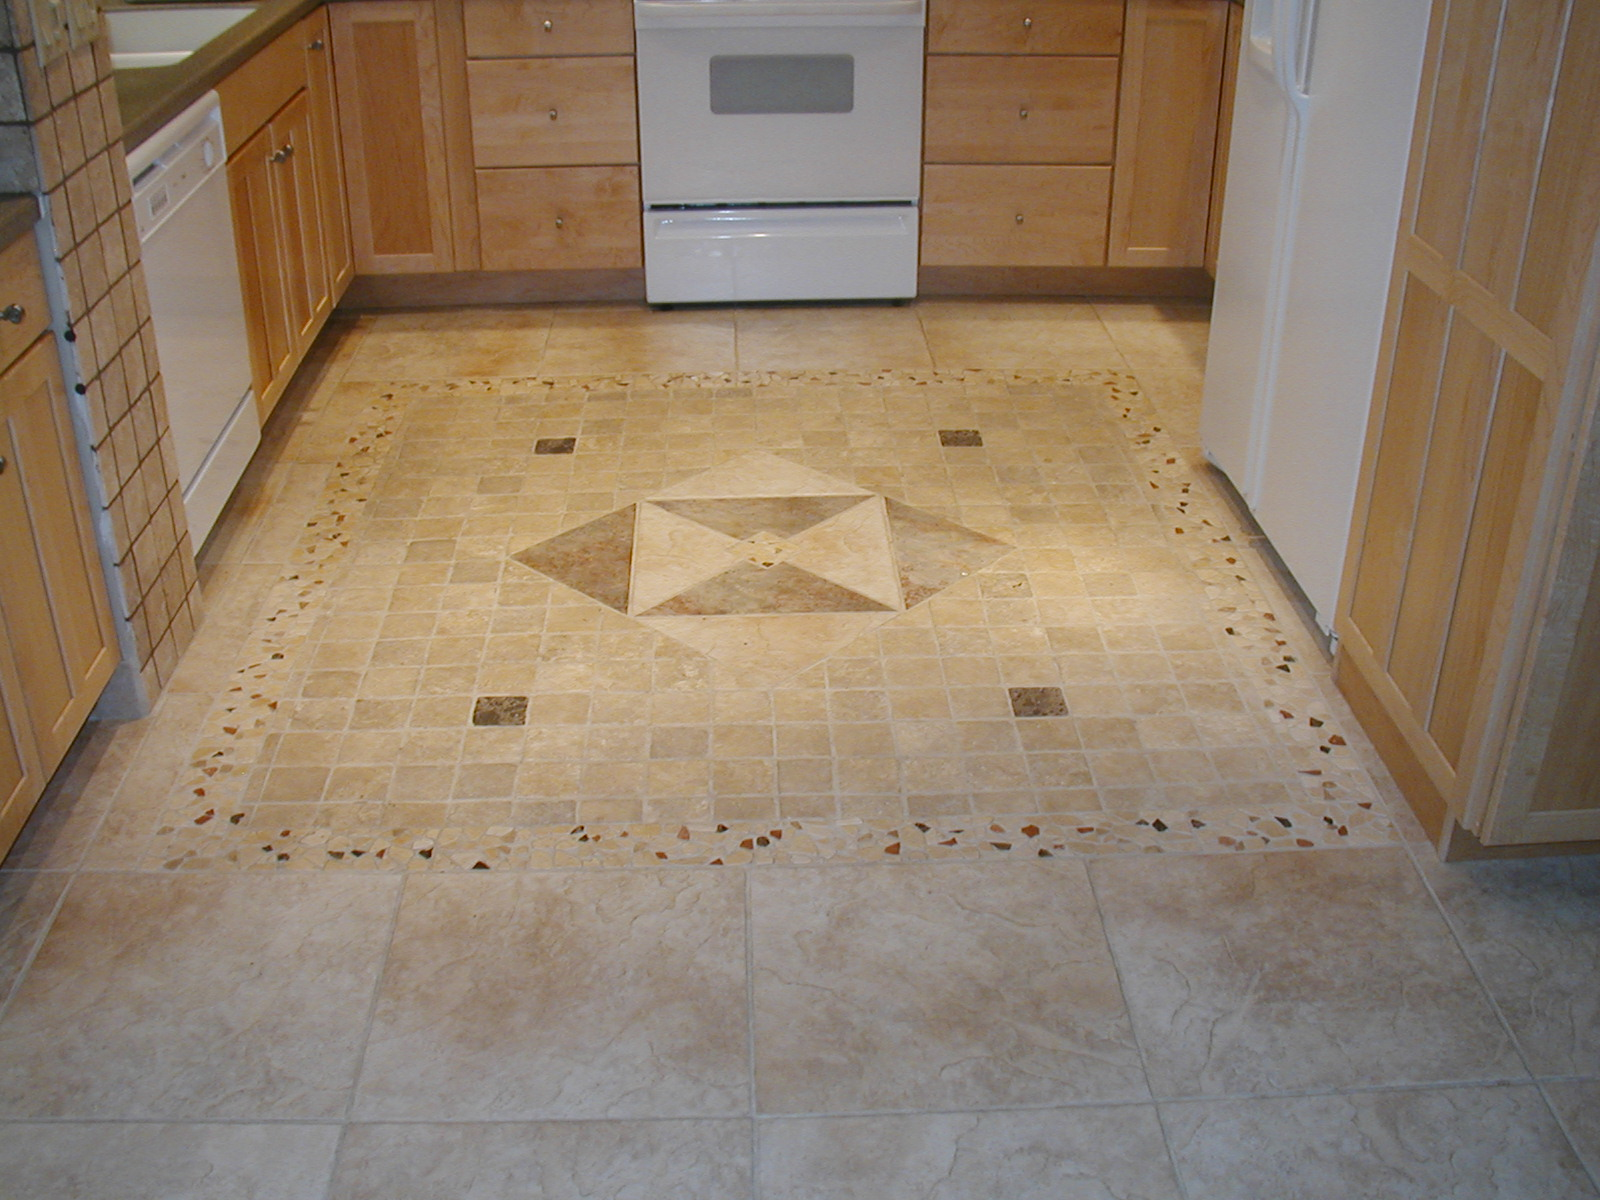 Floor Tiles Design For Small House Complete Home Remodeling Jmarvinhandyman